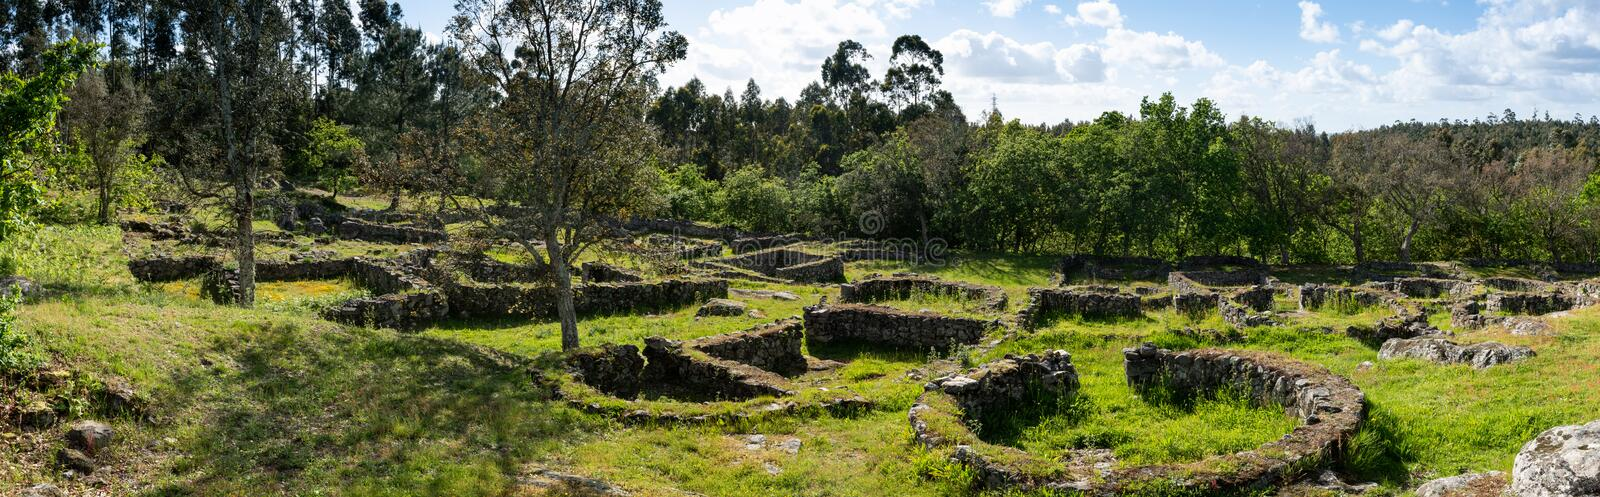 Castro de Romariz. The Castro de Romariz is a fortified settlement dating from the 5th century BC, with occupancy levels up to the first century AD. Romariz stock photos